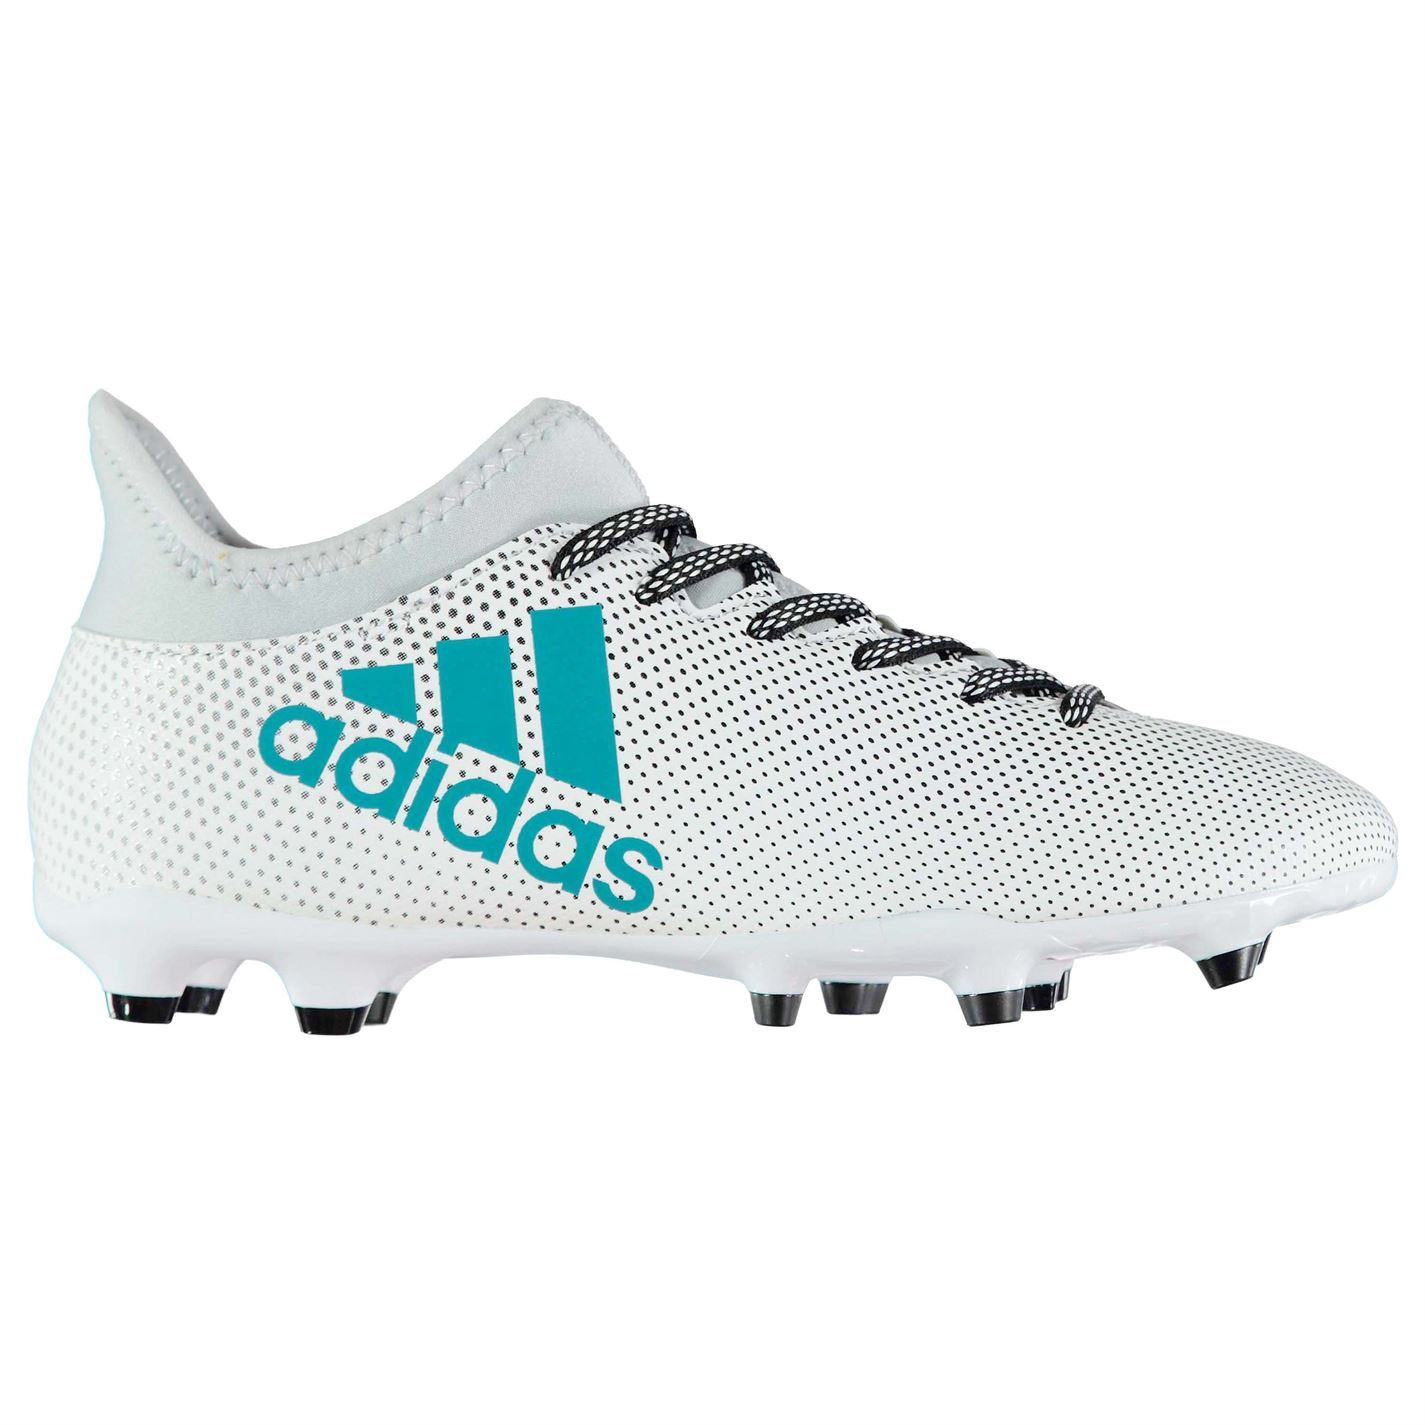 01cd10d047c ... adidas X 17.3 FG Firm Ground Football Boots Mens Wht Gry Blu Soccer  Cleats ...